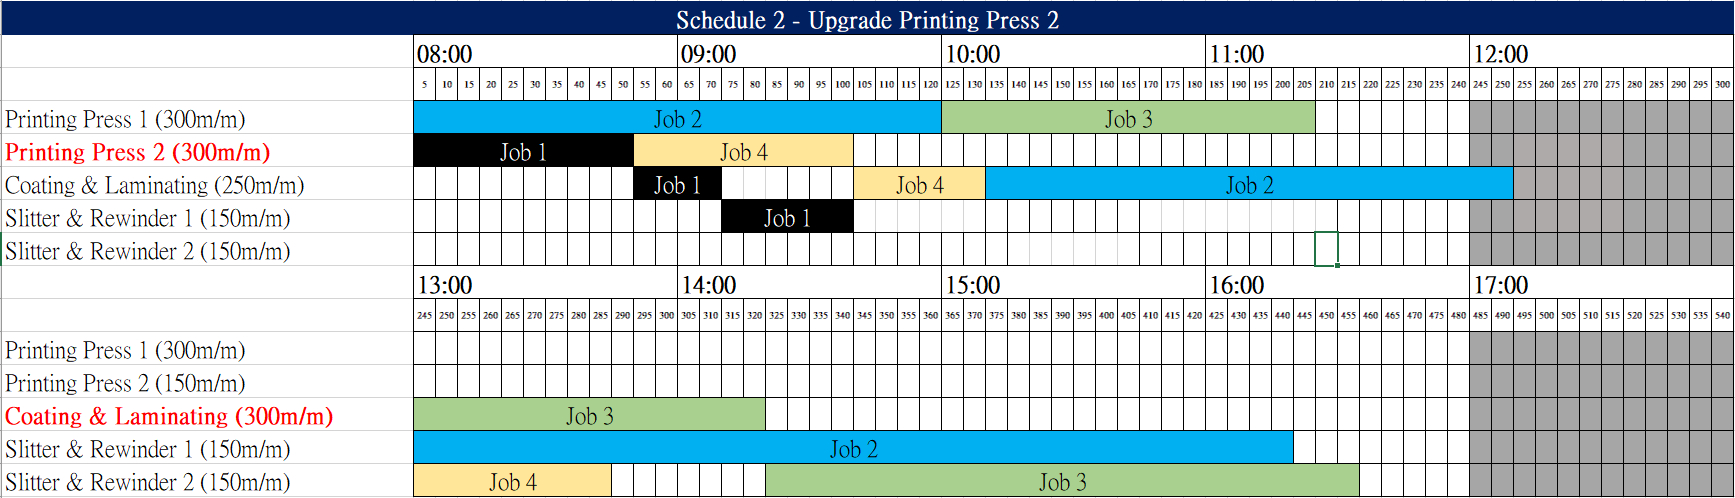 proimages/blog/production_schedule_2_-_upgrade_press_2.jpg